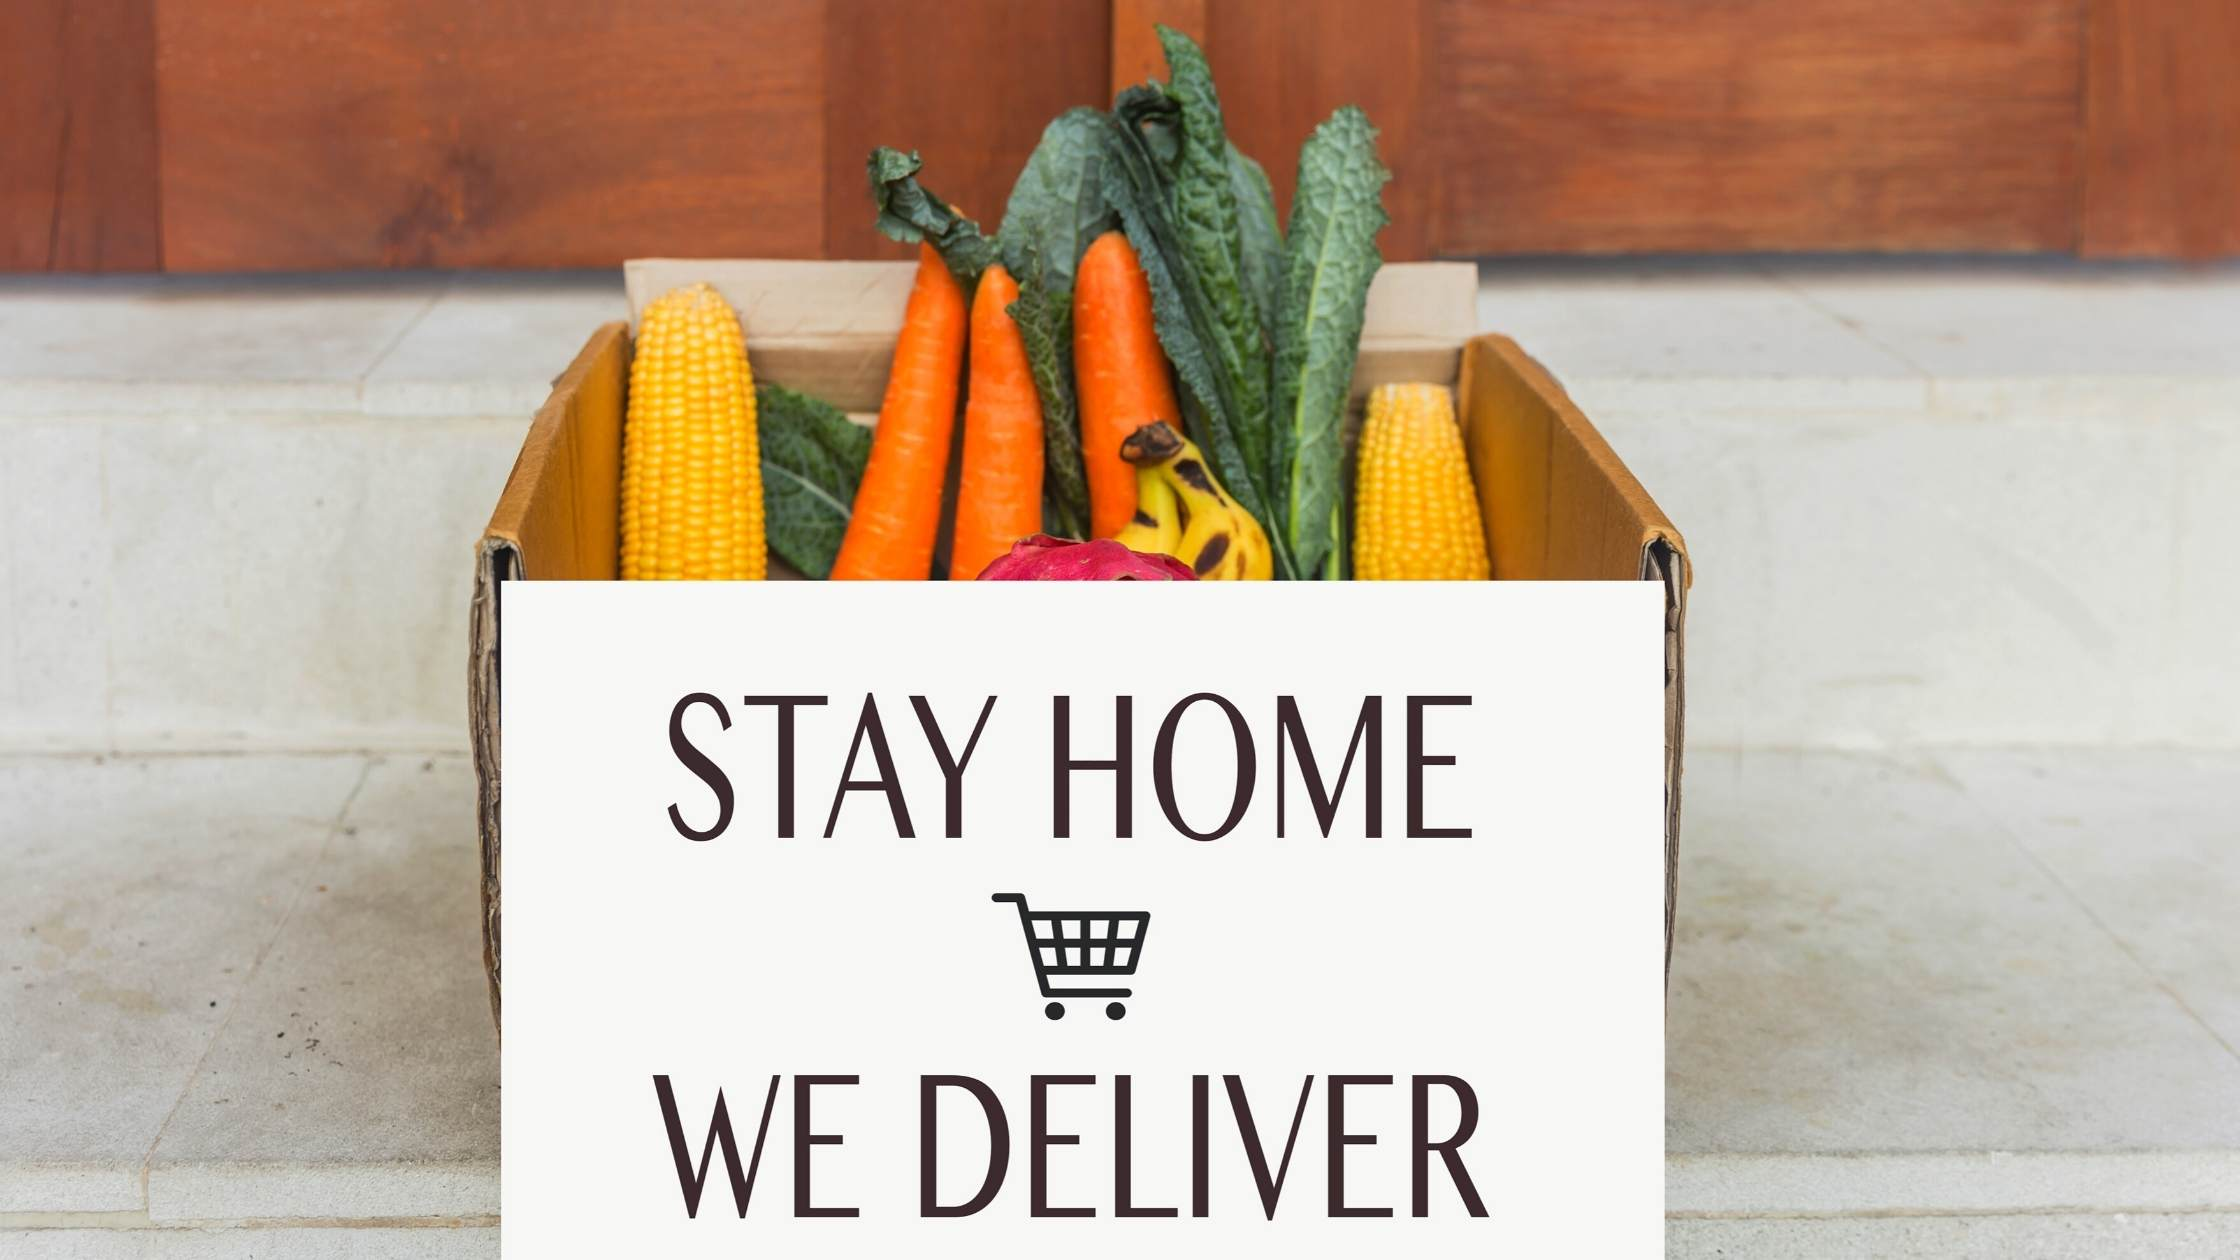 stay home we deliver sign